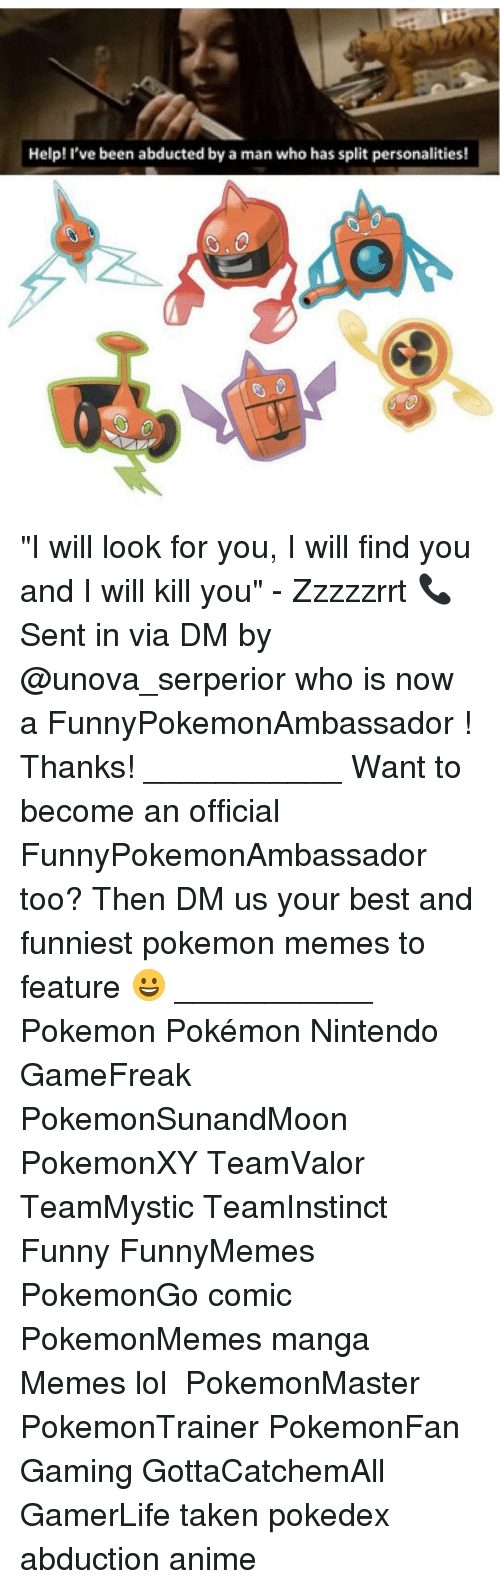 "abduction: Help! I've been abducted by a man who has split personalities! ""I will look for you, I will find you and I will kill you"" - Zzzzzrrt 📞 Sent in via DM by @unova_serperior who is now a FunnyPokemonAmbassador ! Thanks! ___________ Want to become an official FunnyPokemonAmbassador too? Then DM us your best and funniest pokemon memes to feature 😀 ___________ Pokemon Pokémon Nintendo GameFreak PokemonSunandMoon PokemonXY TeamValor TeamMystic TeamInstinct Funny FunnyMemes PokemonGo comic PokemonMemes manga Memes lol ポケットモンスター PokemonMaster PokemonTrainer PokemonFan Gaming GottaCatchemAll GamerLife taken pokedex abduction anime"